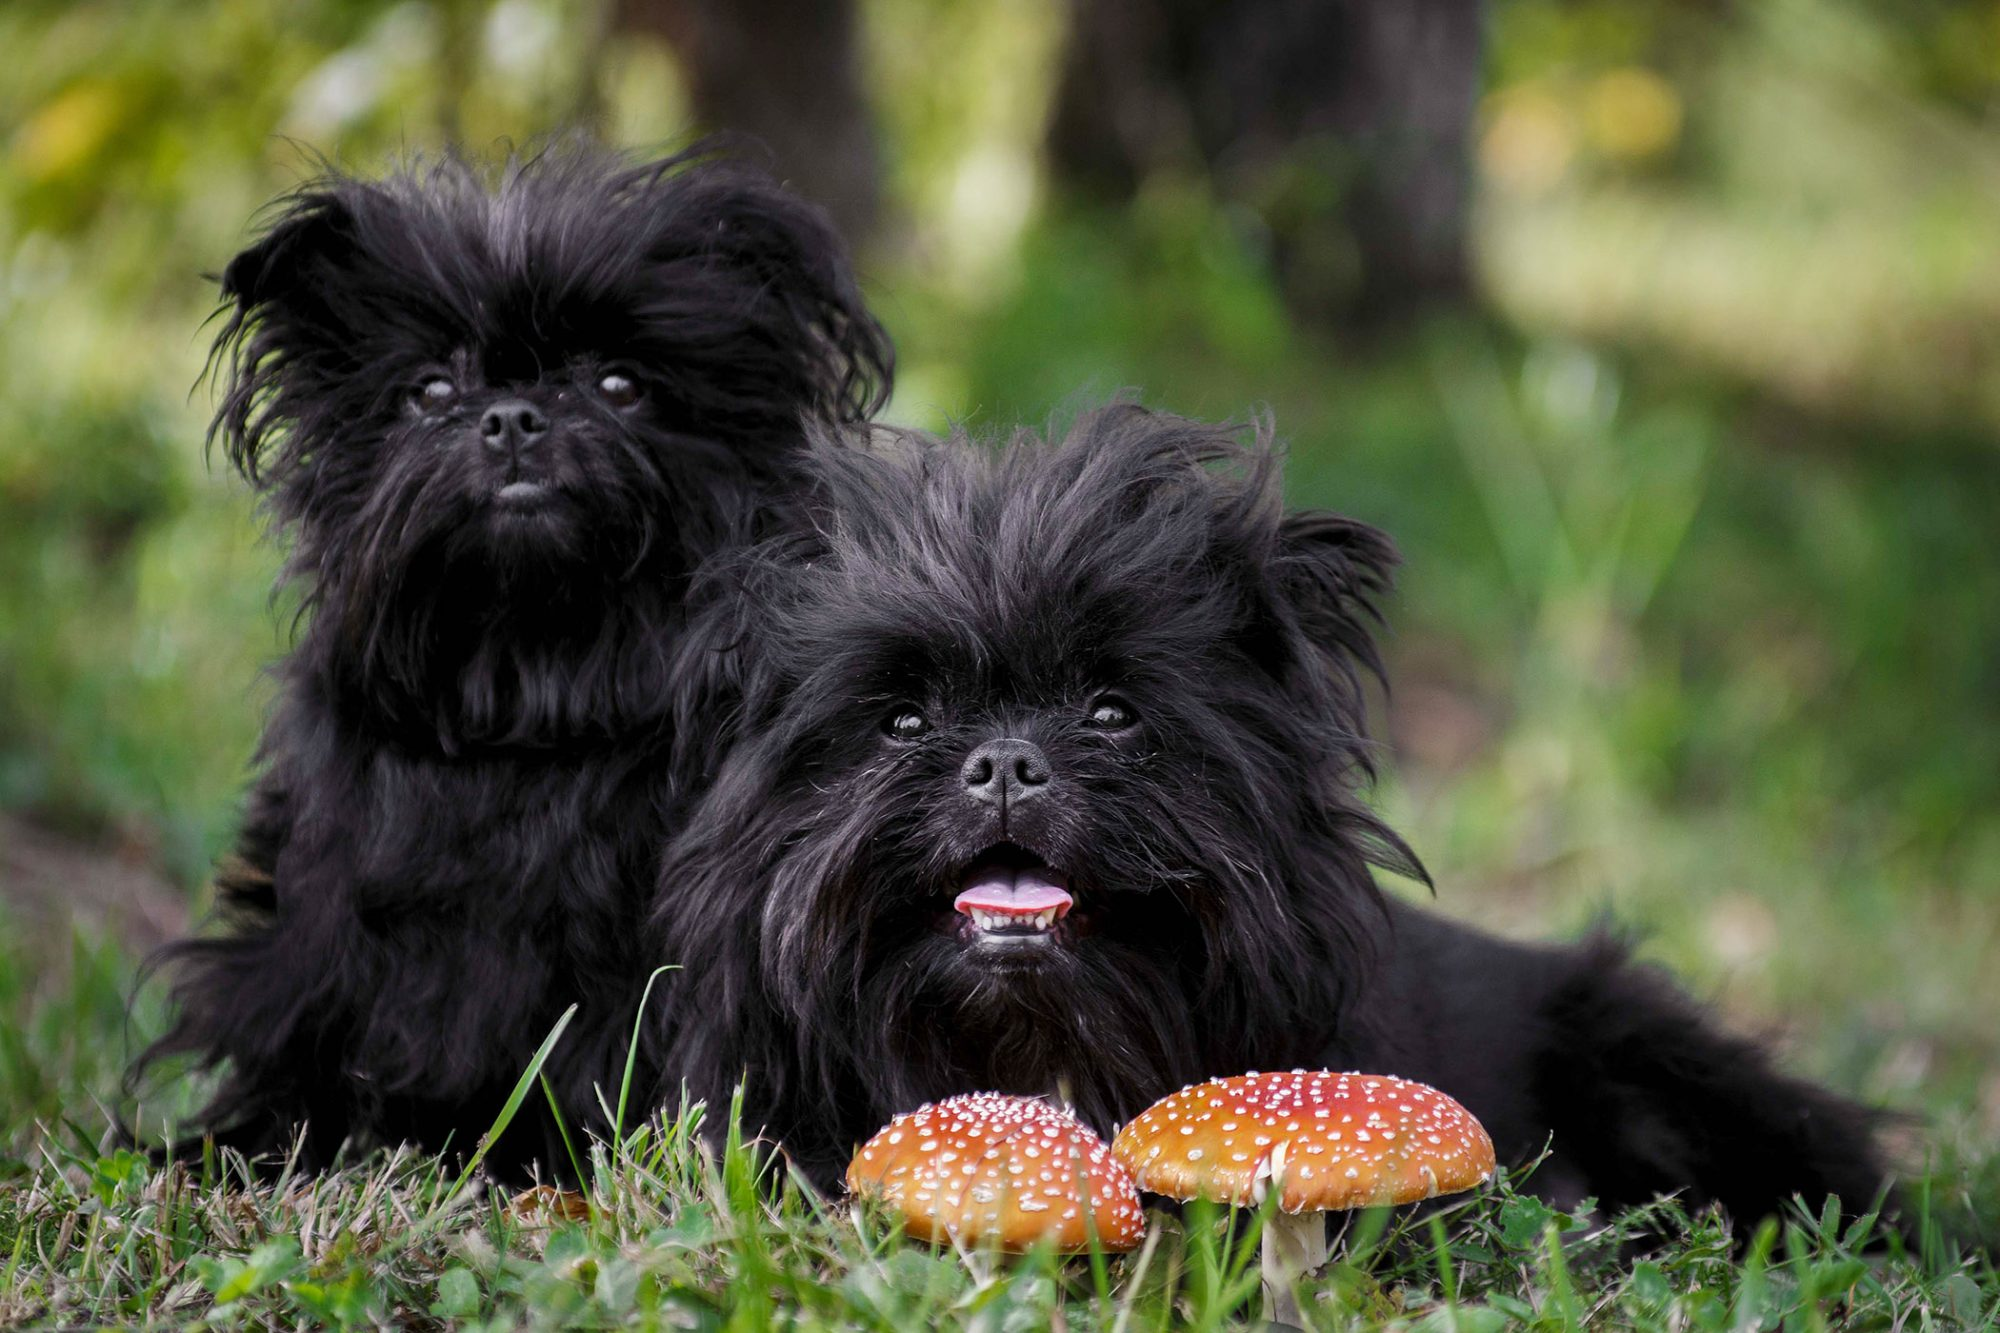 two black affenpinscher dogs lying in grass